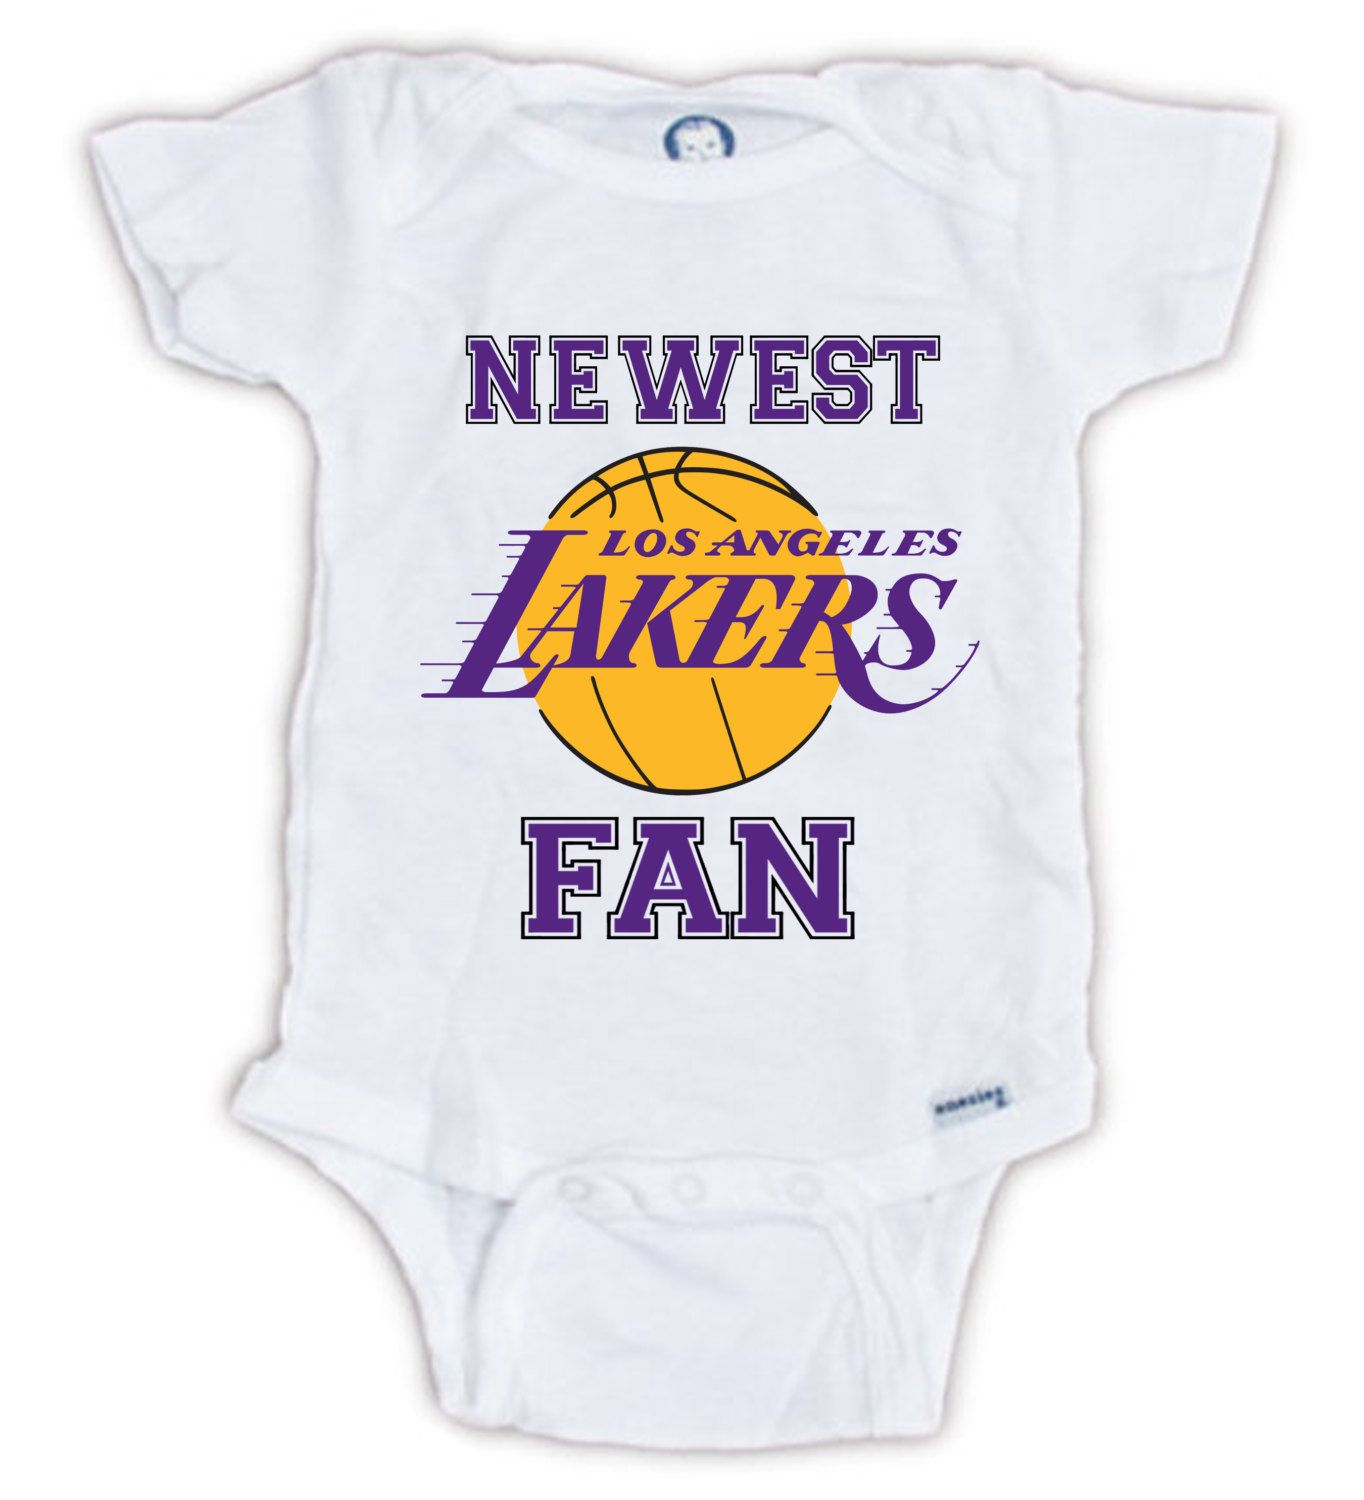 08ed17bdd1a Newest LAKERS Fan Baby Onesie by JujuApparel on Etsy Baby clothes ...